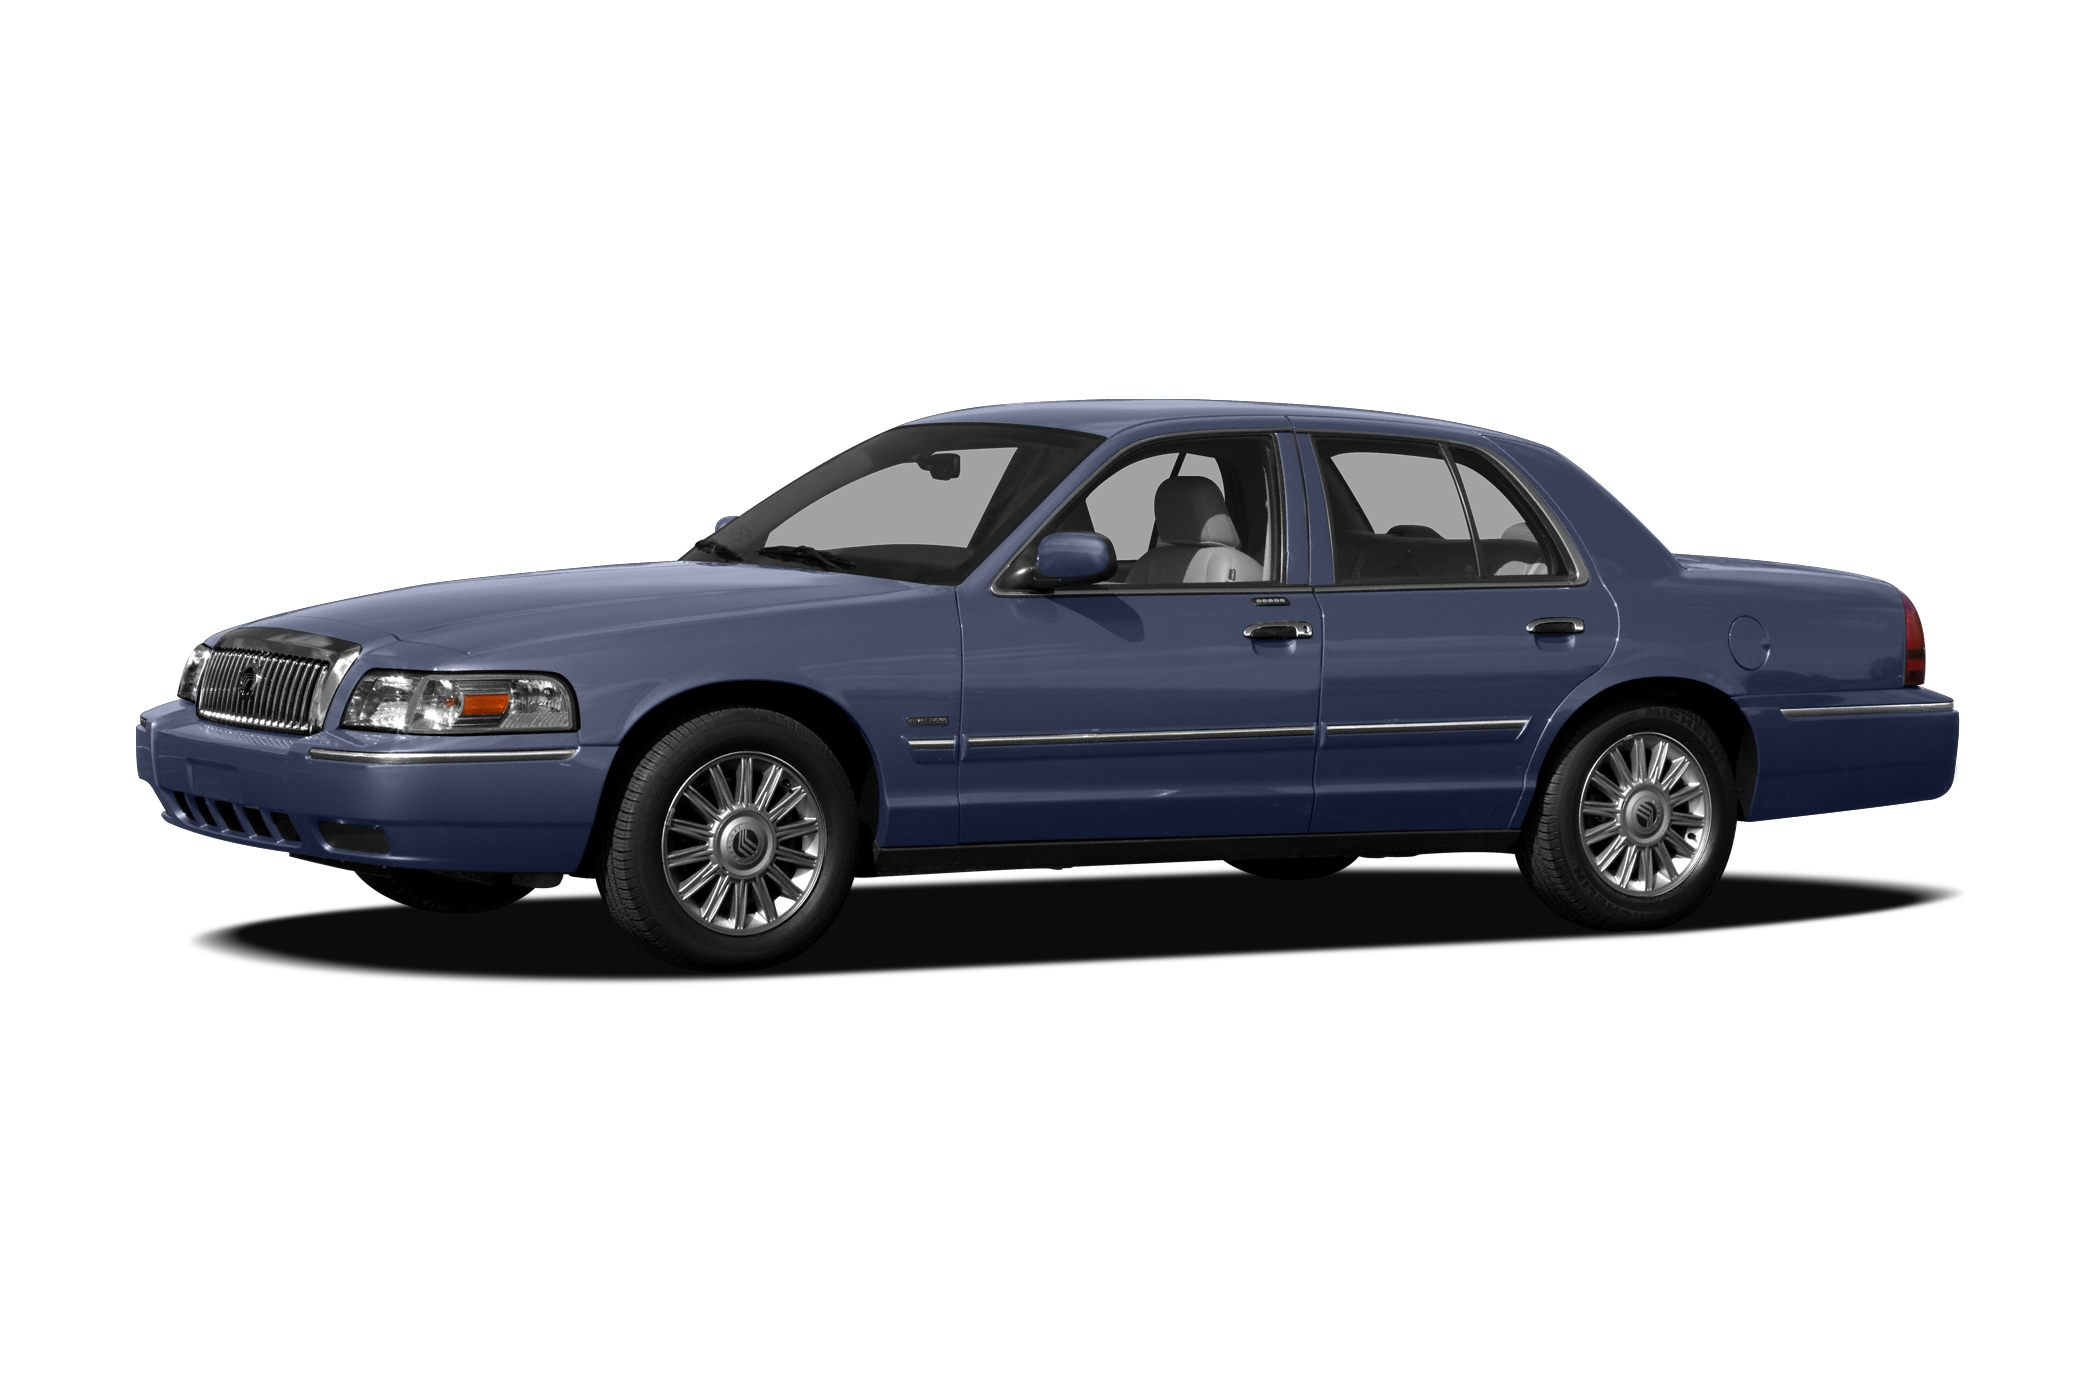 2011 Mercury Grand Marquis LS Sedan for sale in Henderson for $16,988 with 57,484 miles.